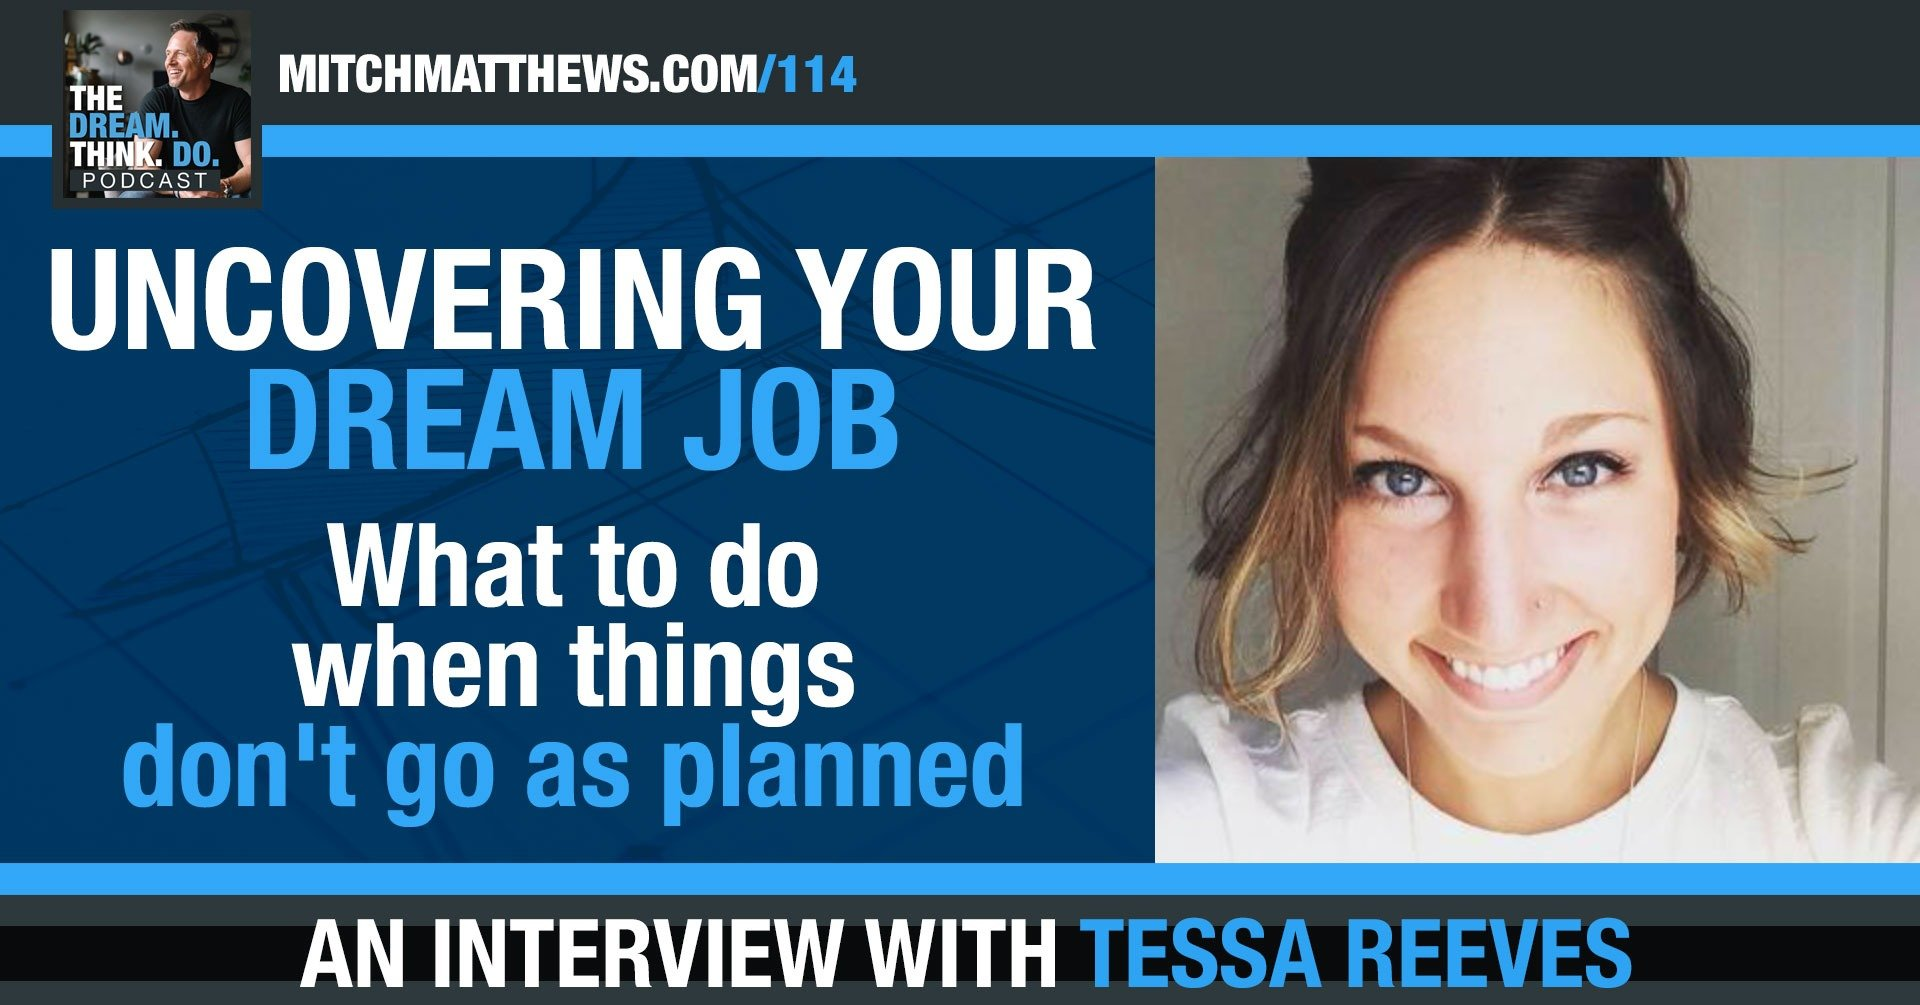 UNCOVERING YOUR DREAM JOB - What to do when things don't go as planned Tessa Reeves